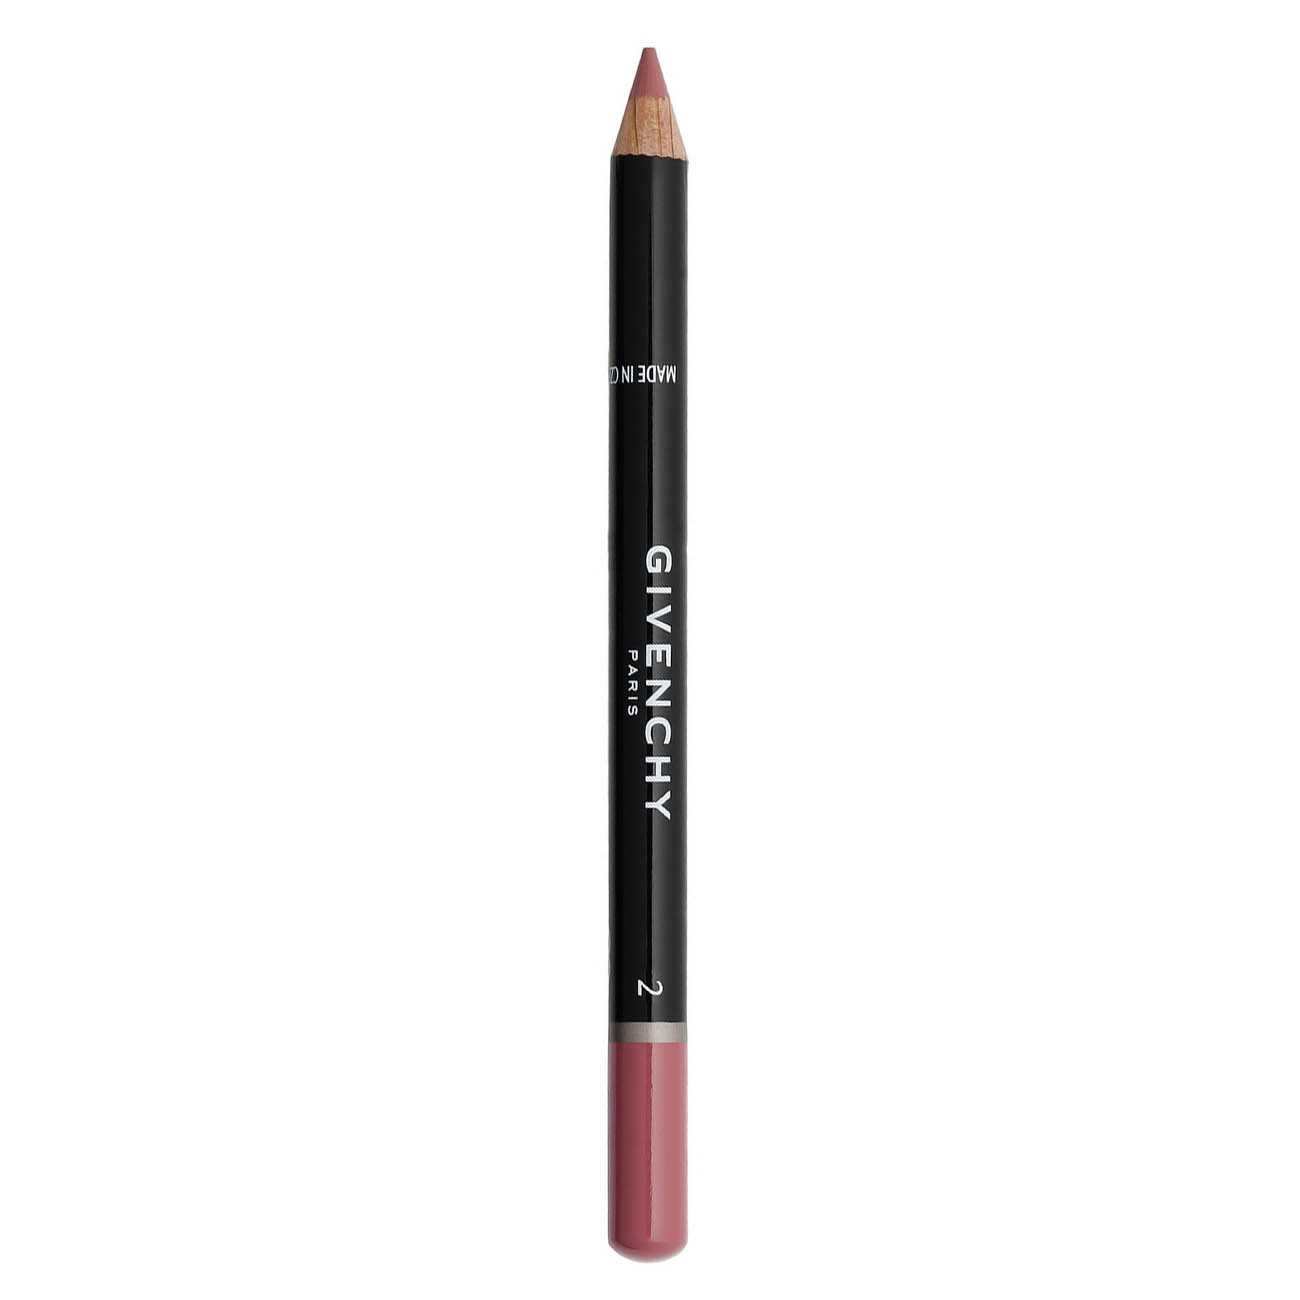 Lip Liner 2 G Litchi 2 Givenchy imagine 2021 bestvalue.eu